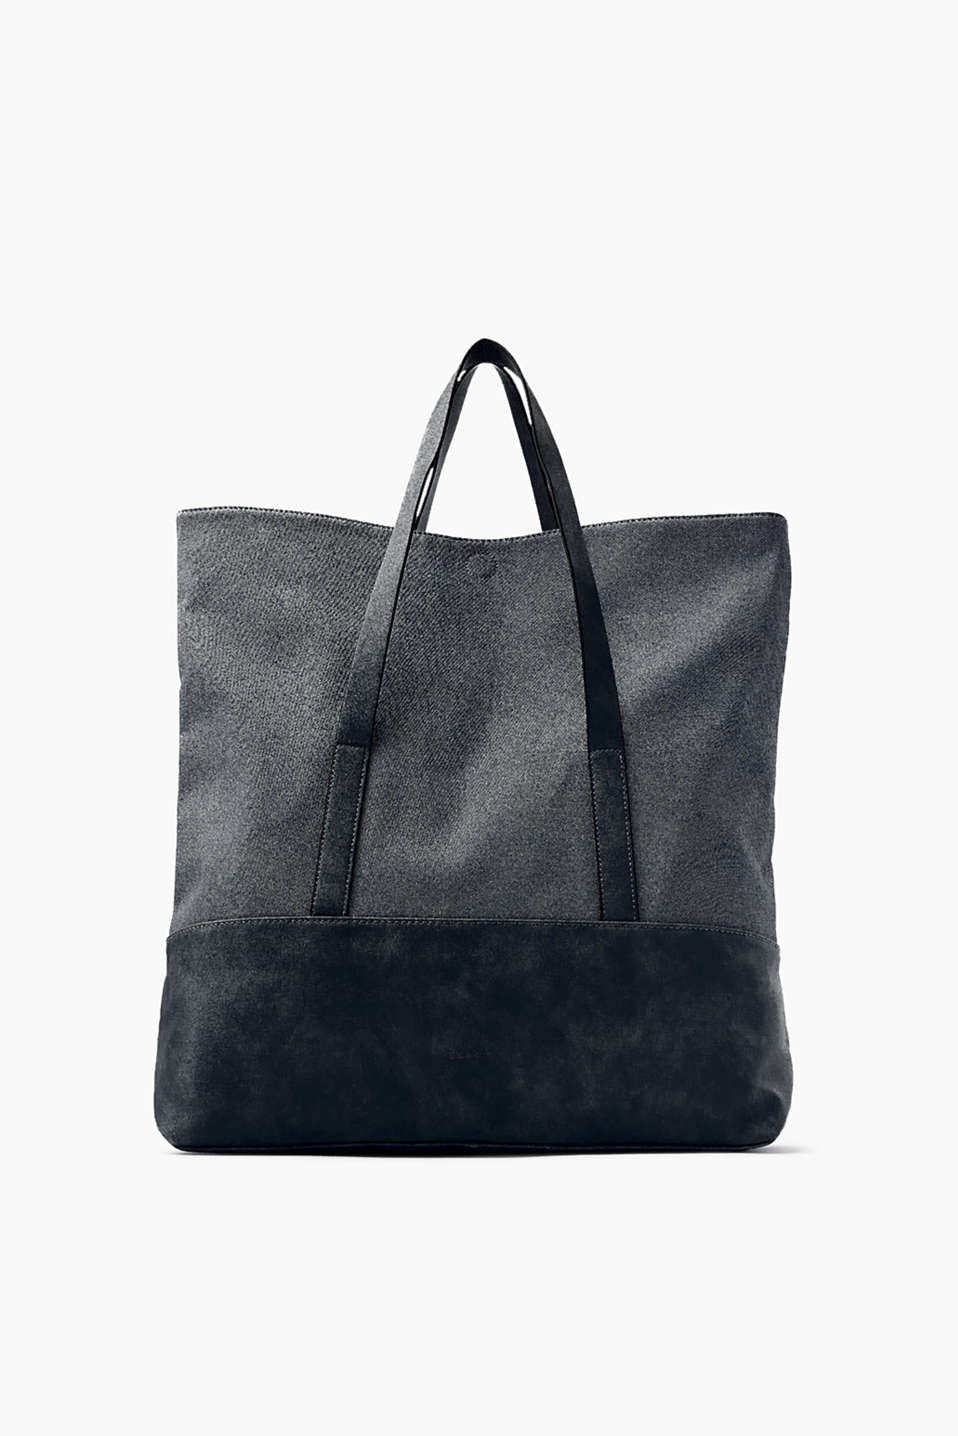 Een everyday favourite! Oversized shopper van glad imitatieleer